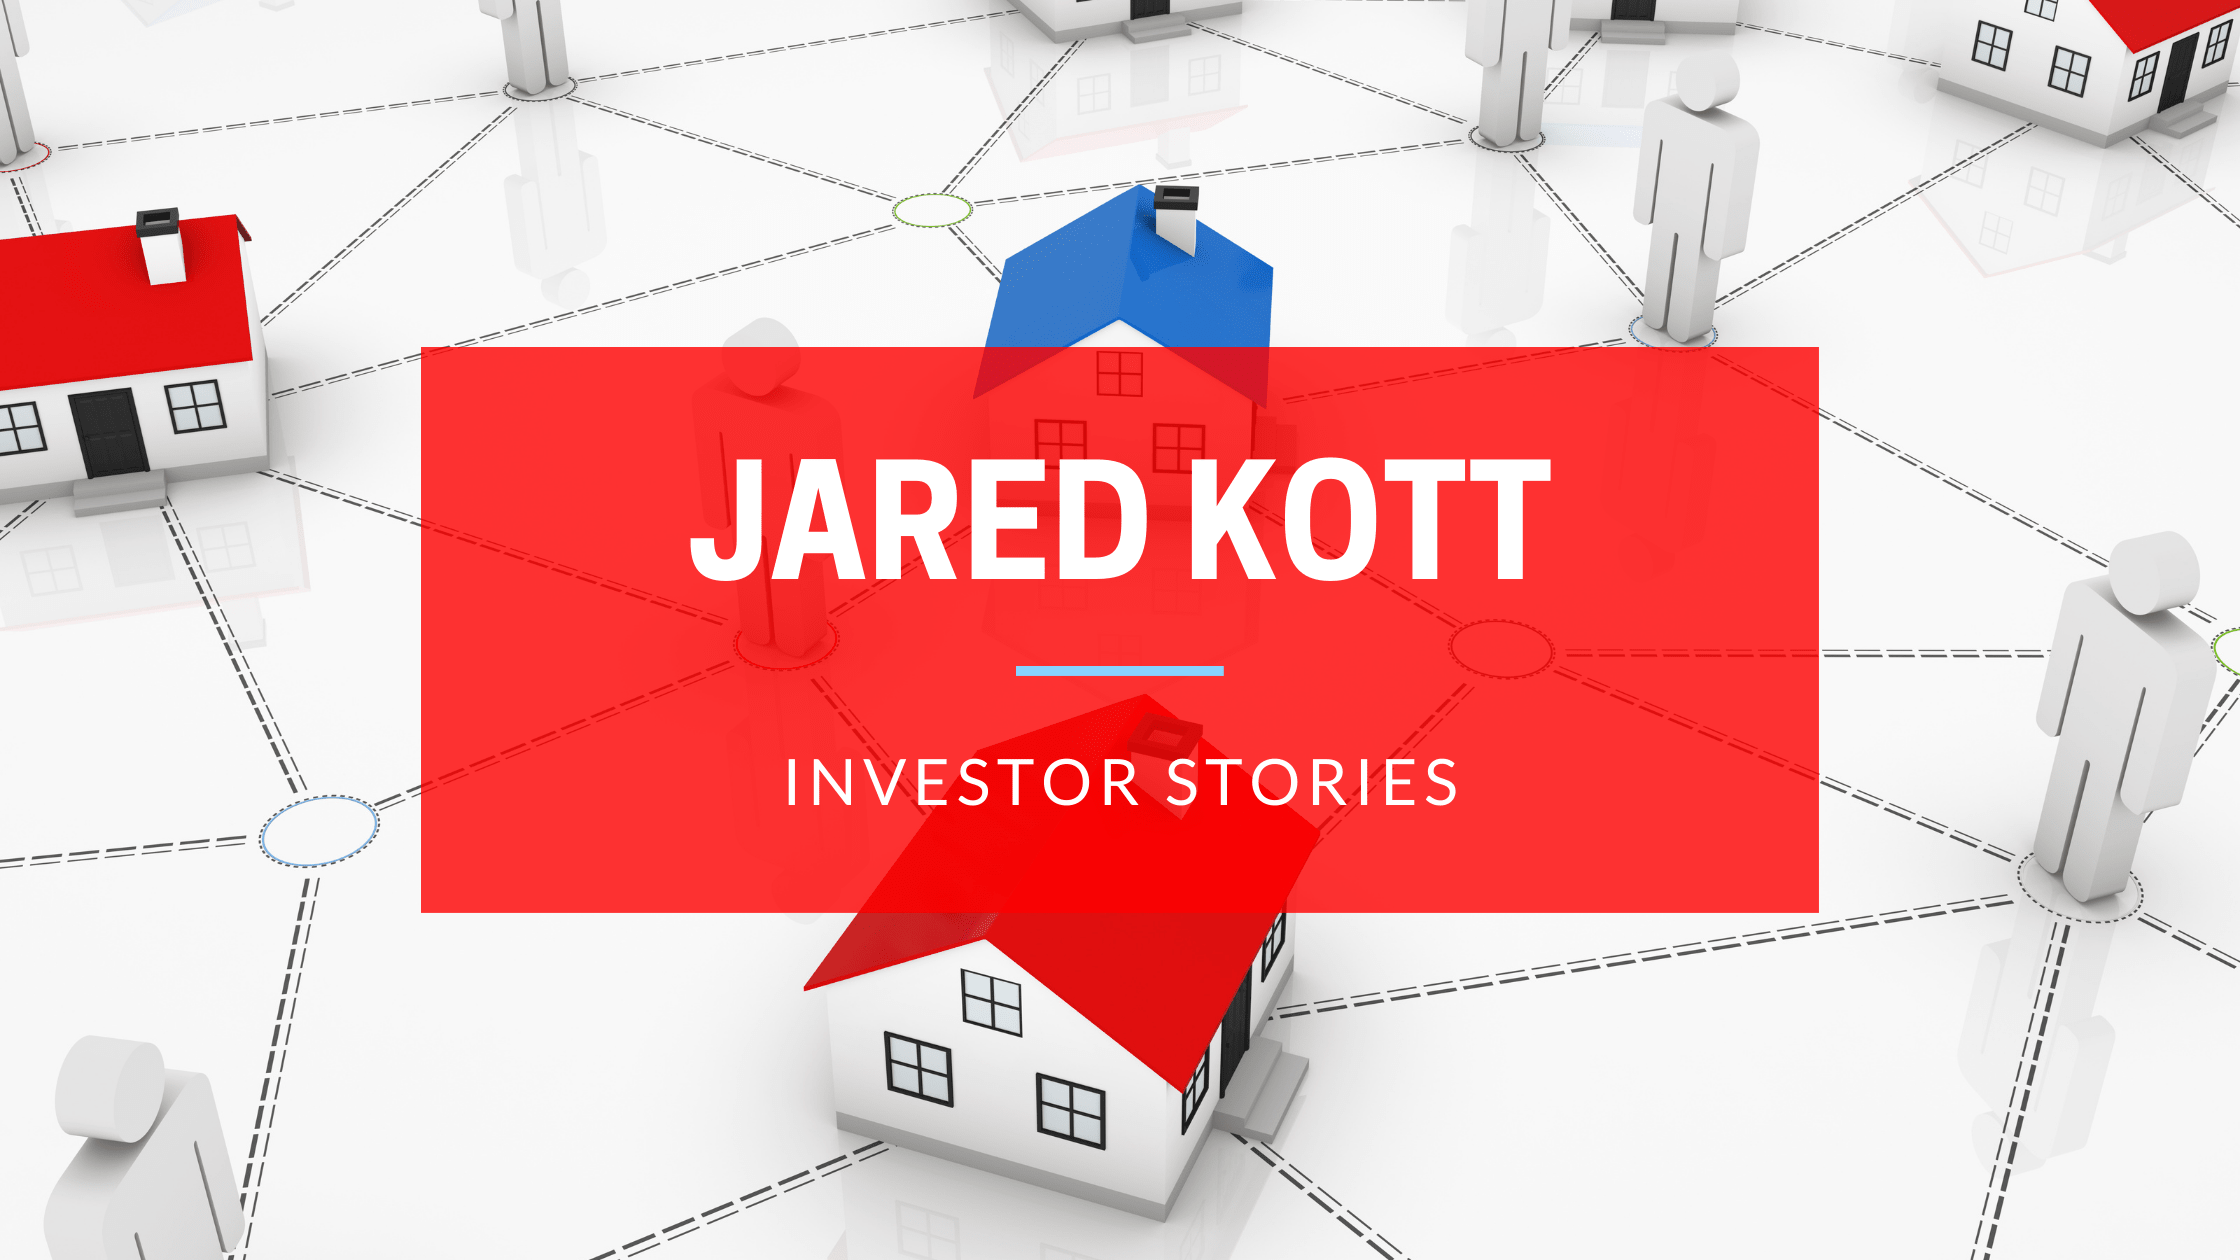 Investor Stories Featuring Jared Kott